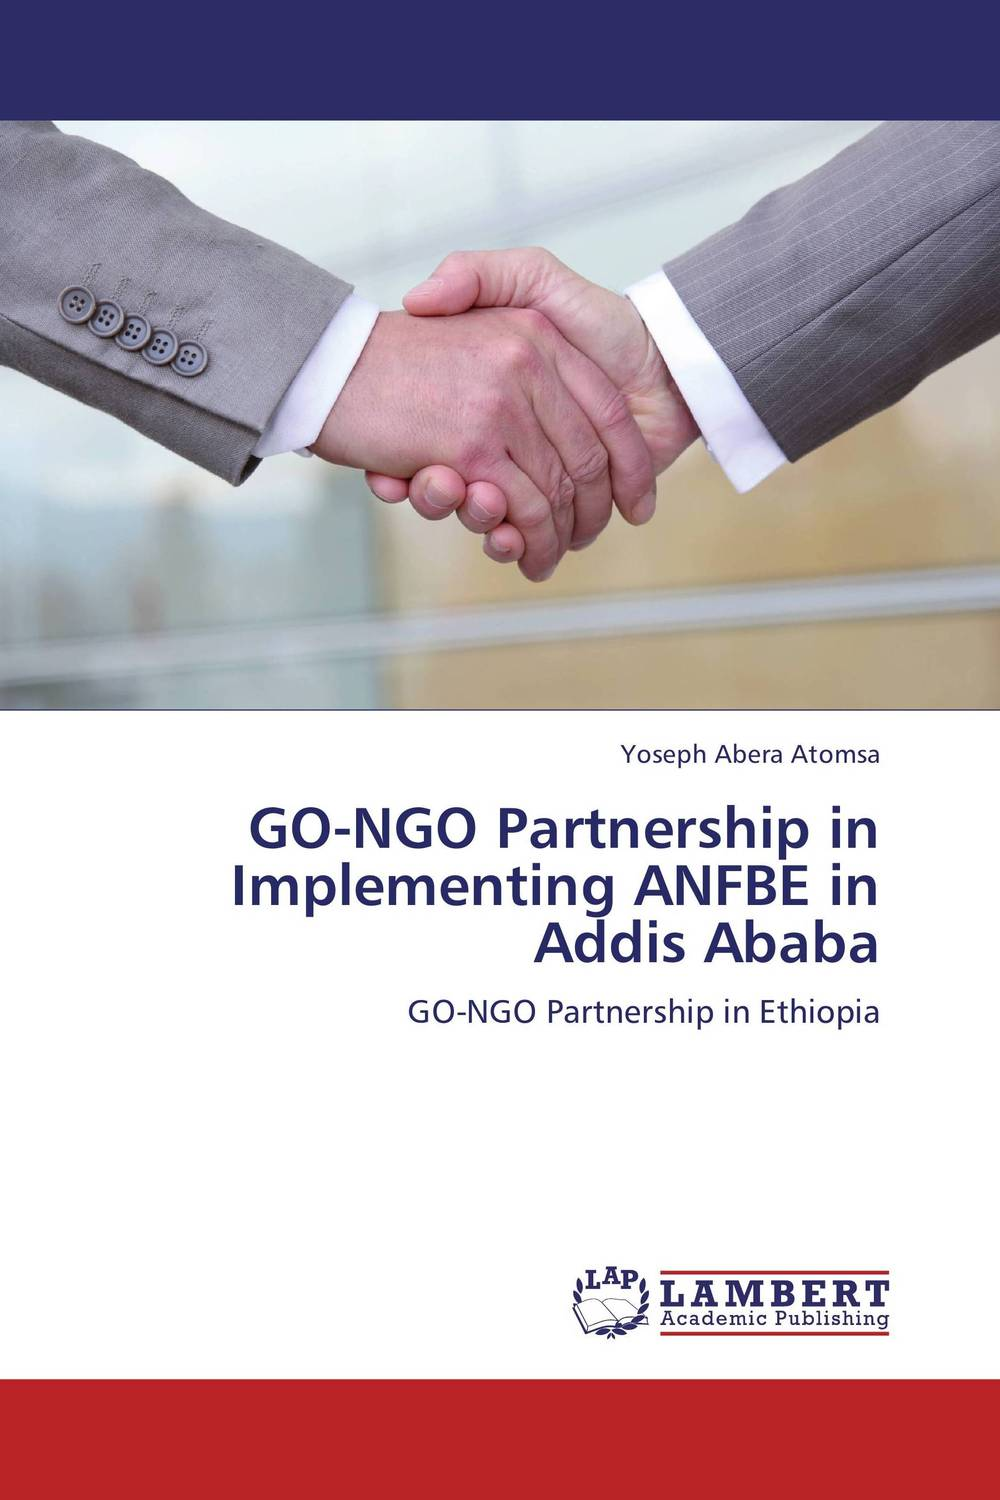 Фото GO-NGO Partnership in Implementing ANFBE in Addis Ababa cervical cancer in amhara region in ethiopia